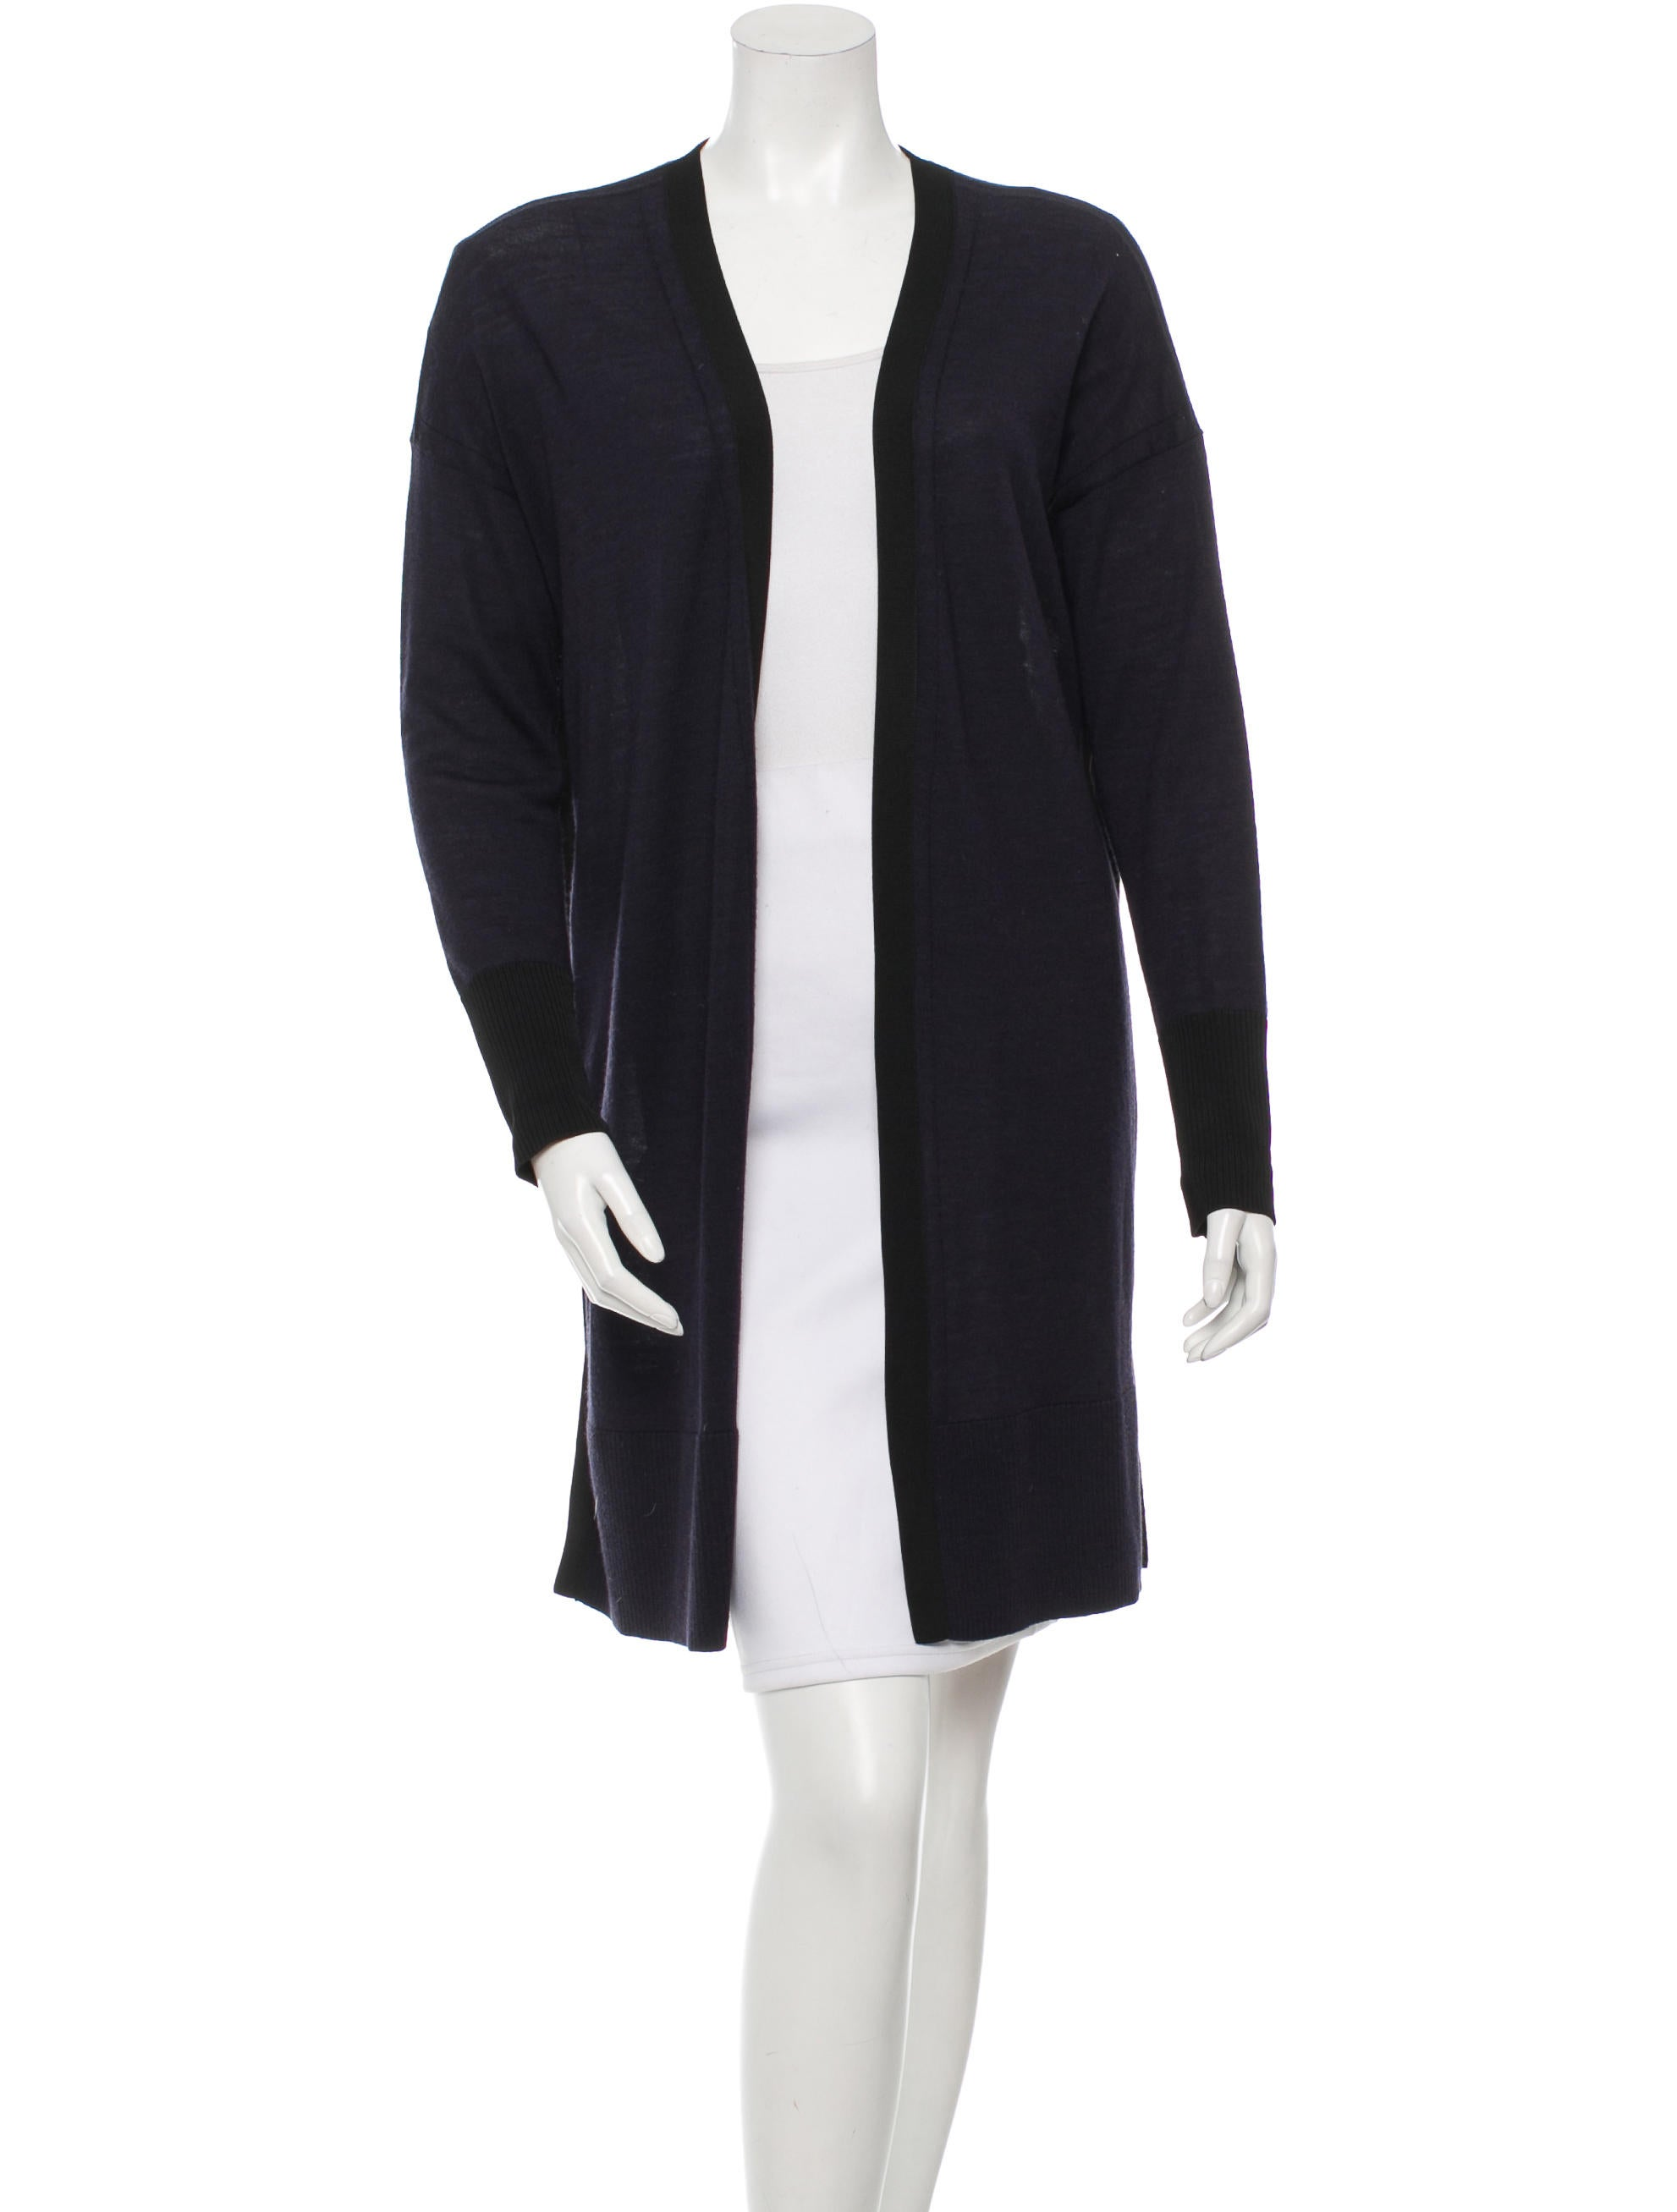 Moncler Wool Cardigan w/ Mohair Front Details Moncler cardigan featuring mohair-blend front. Spread collar; two-way zip front. Long sleeves. Standard silhouette. Hip-length hem. Mohair/cotton front. .